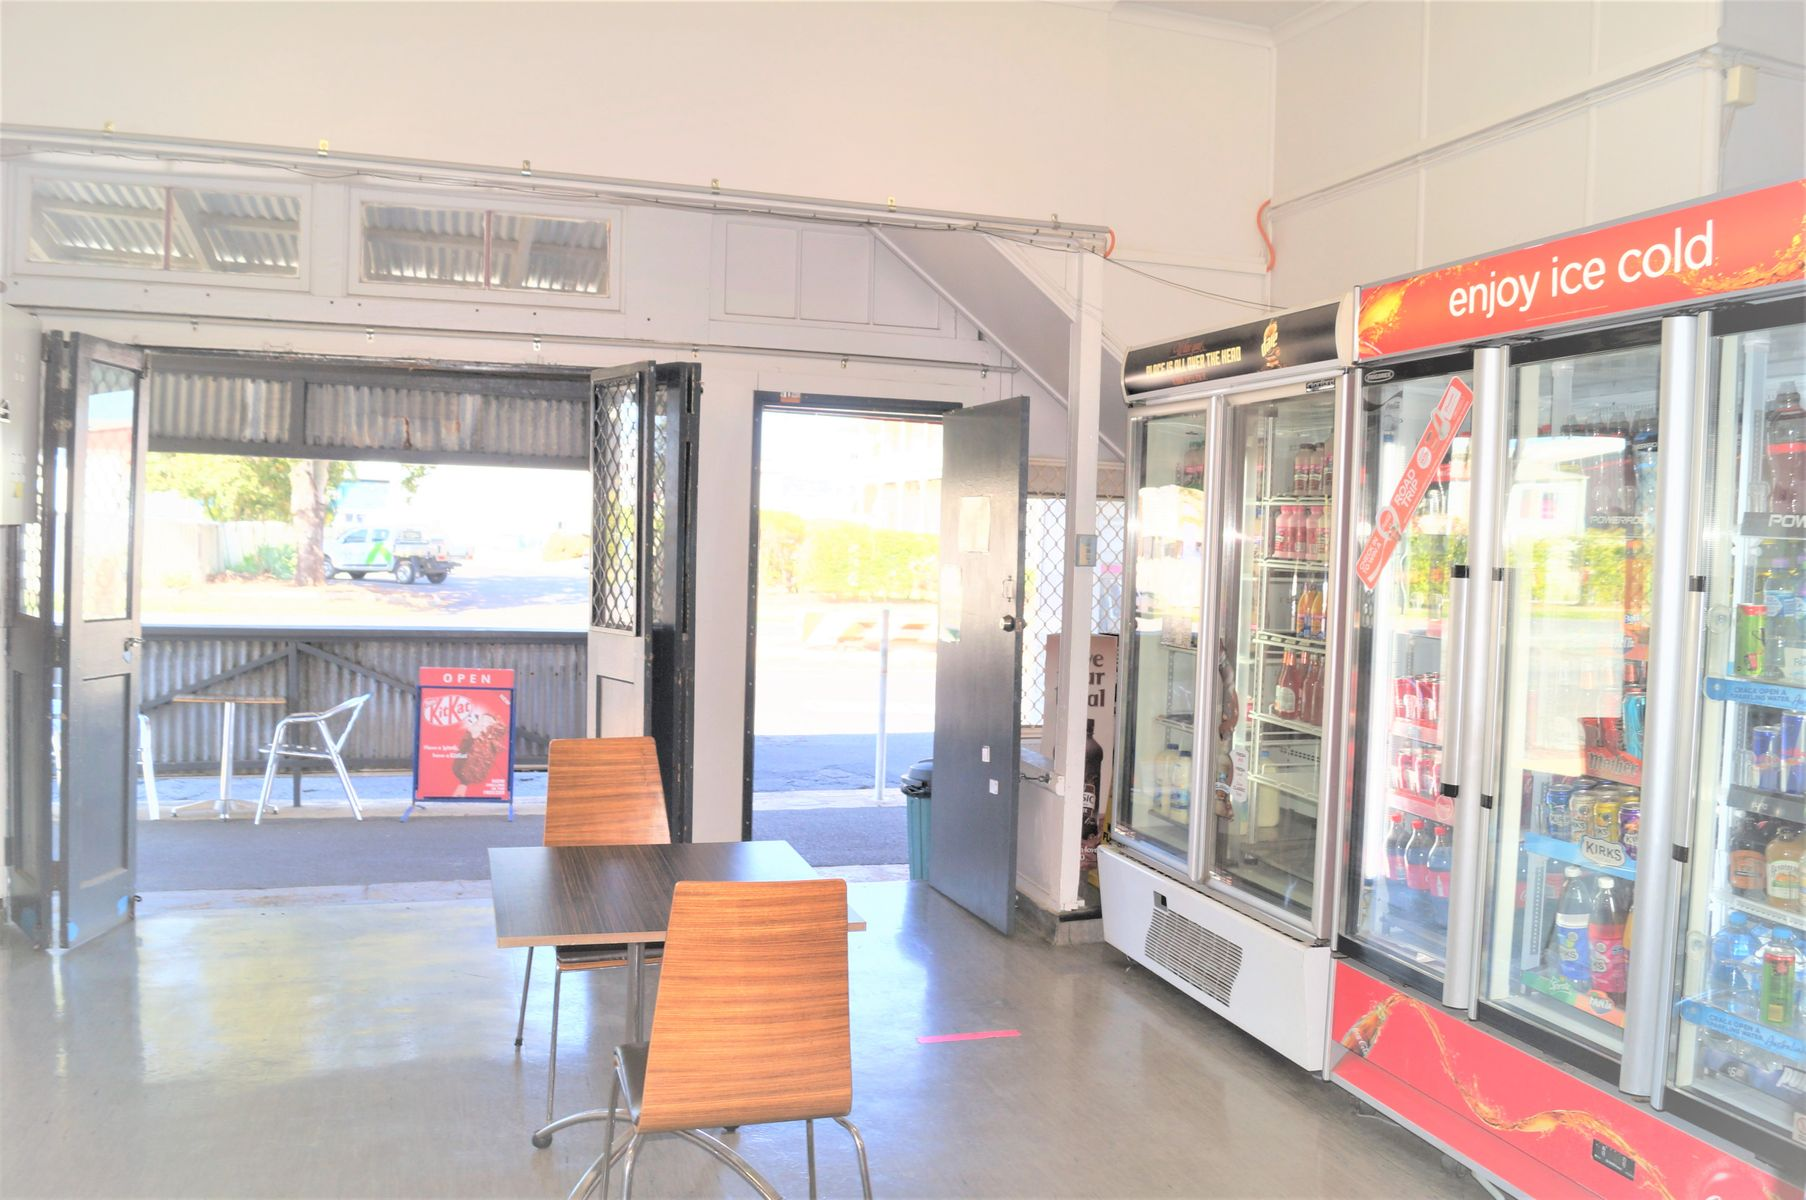 288 Denison Street, Rockhampton City, QLD 4700